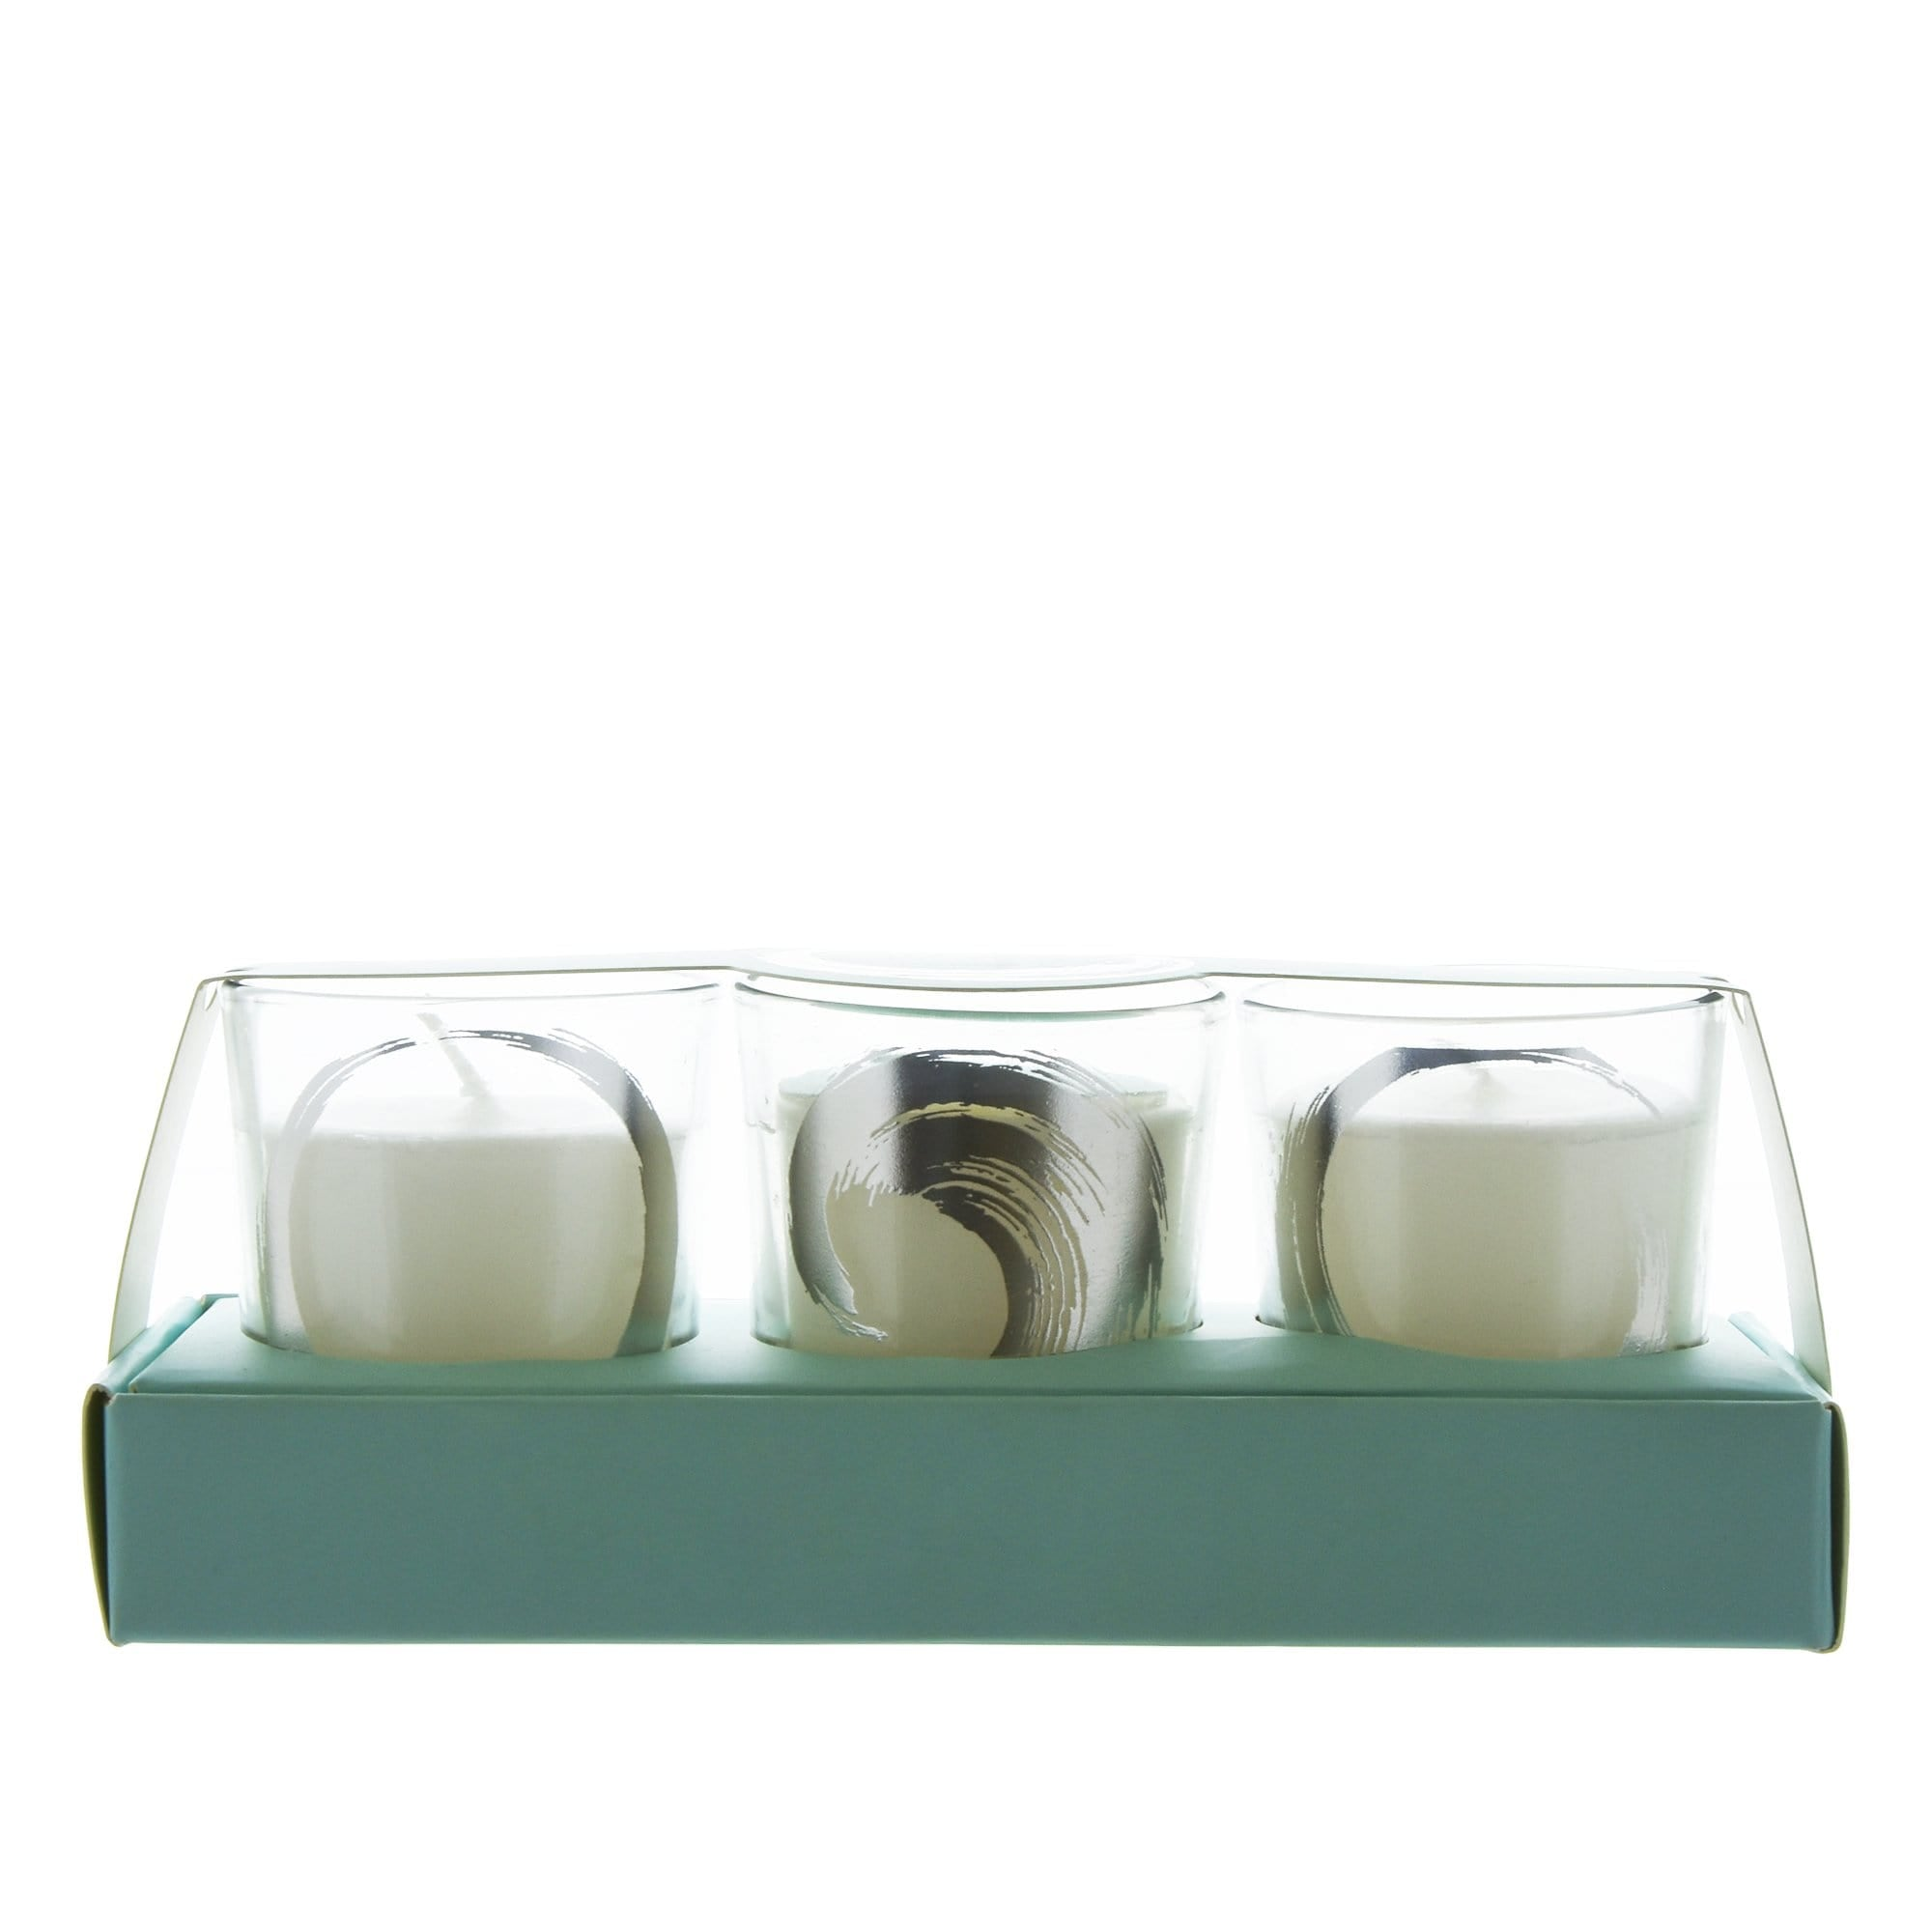 Candlelight Home Candle Candlelight Spa Day Revitalise Set of 3 Glass Wax Filled Pots Green Tea Scent 50g 6PK